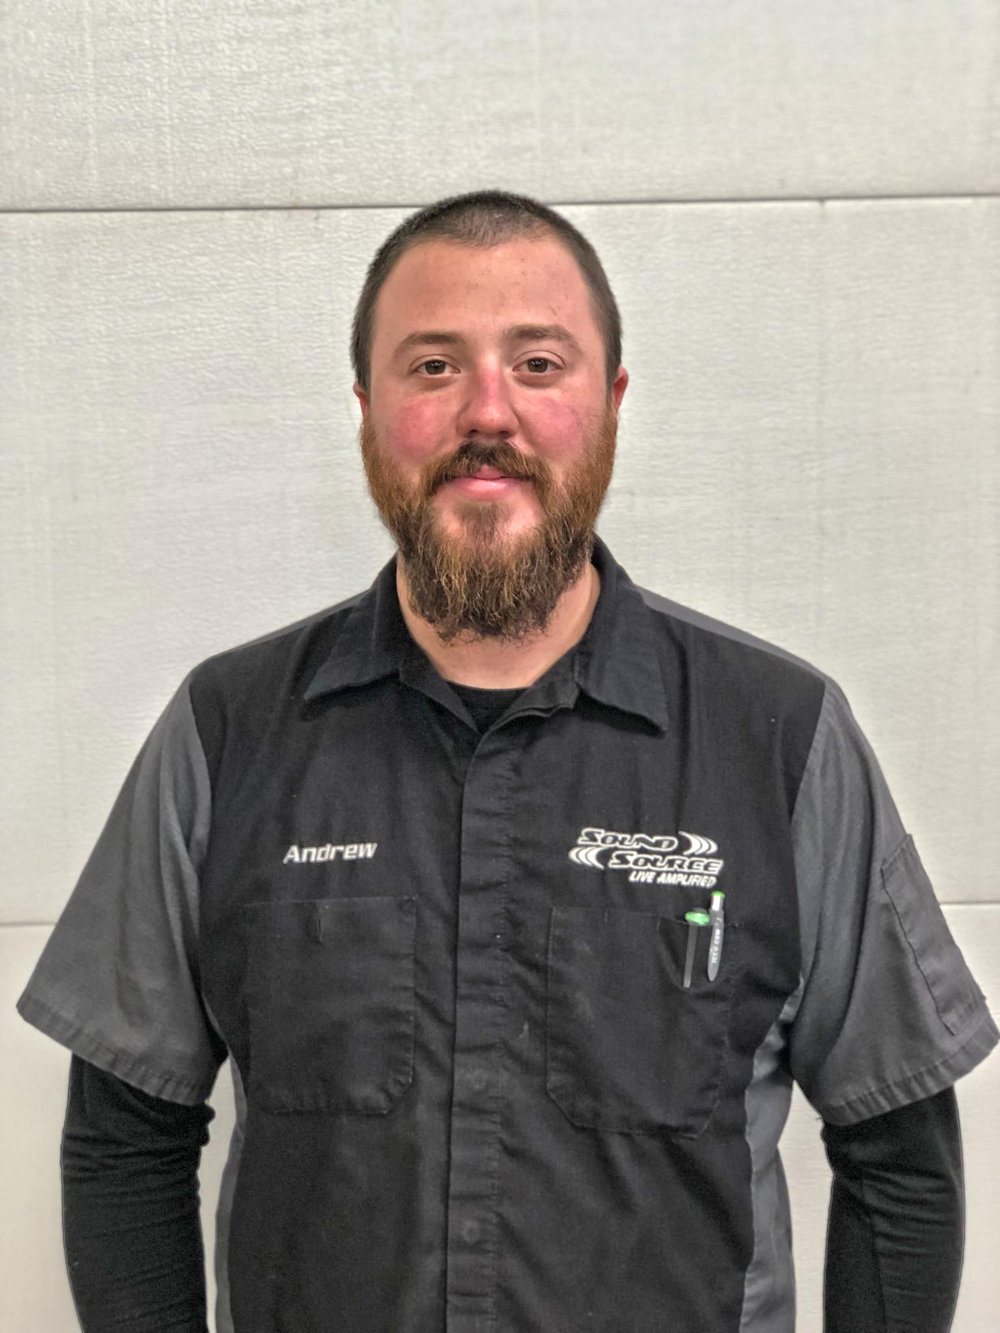 Andrew Green - Andrew is our shop manager. He has been in the automotive industry for over 10 years, with combined years from being a master mechanic to 12 volt expert!